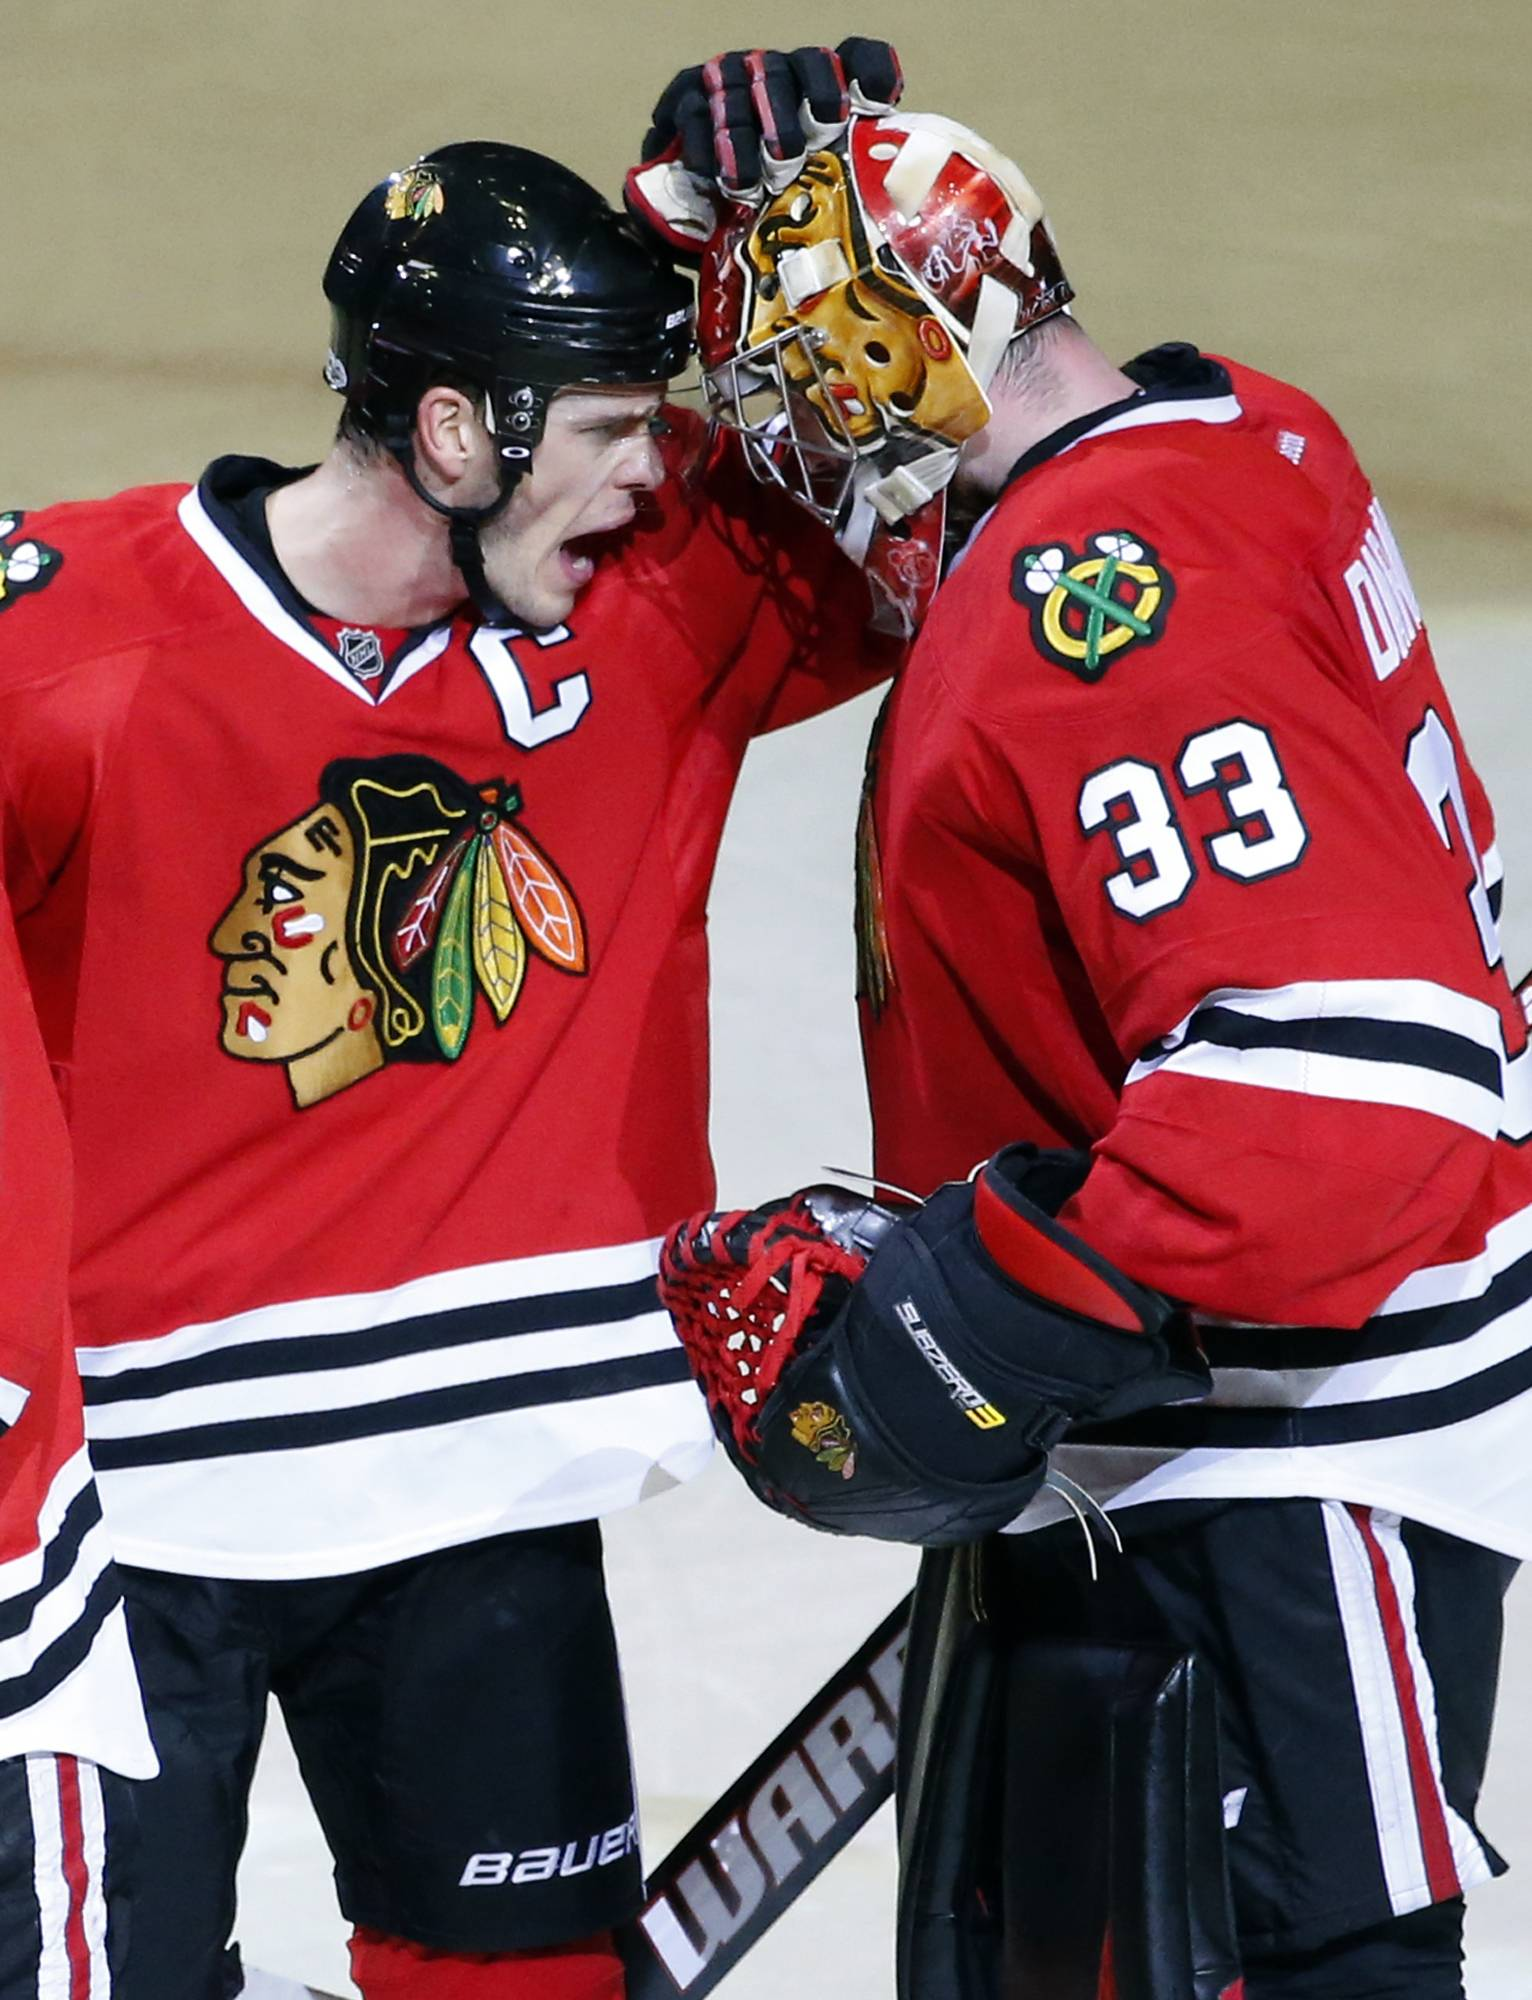 Toews, Darling stand tall in Blackhawks' 2-1 win over Canes